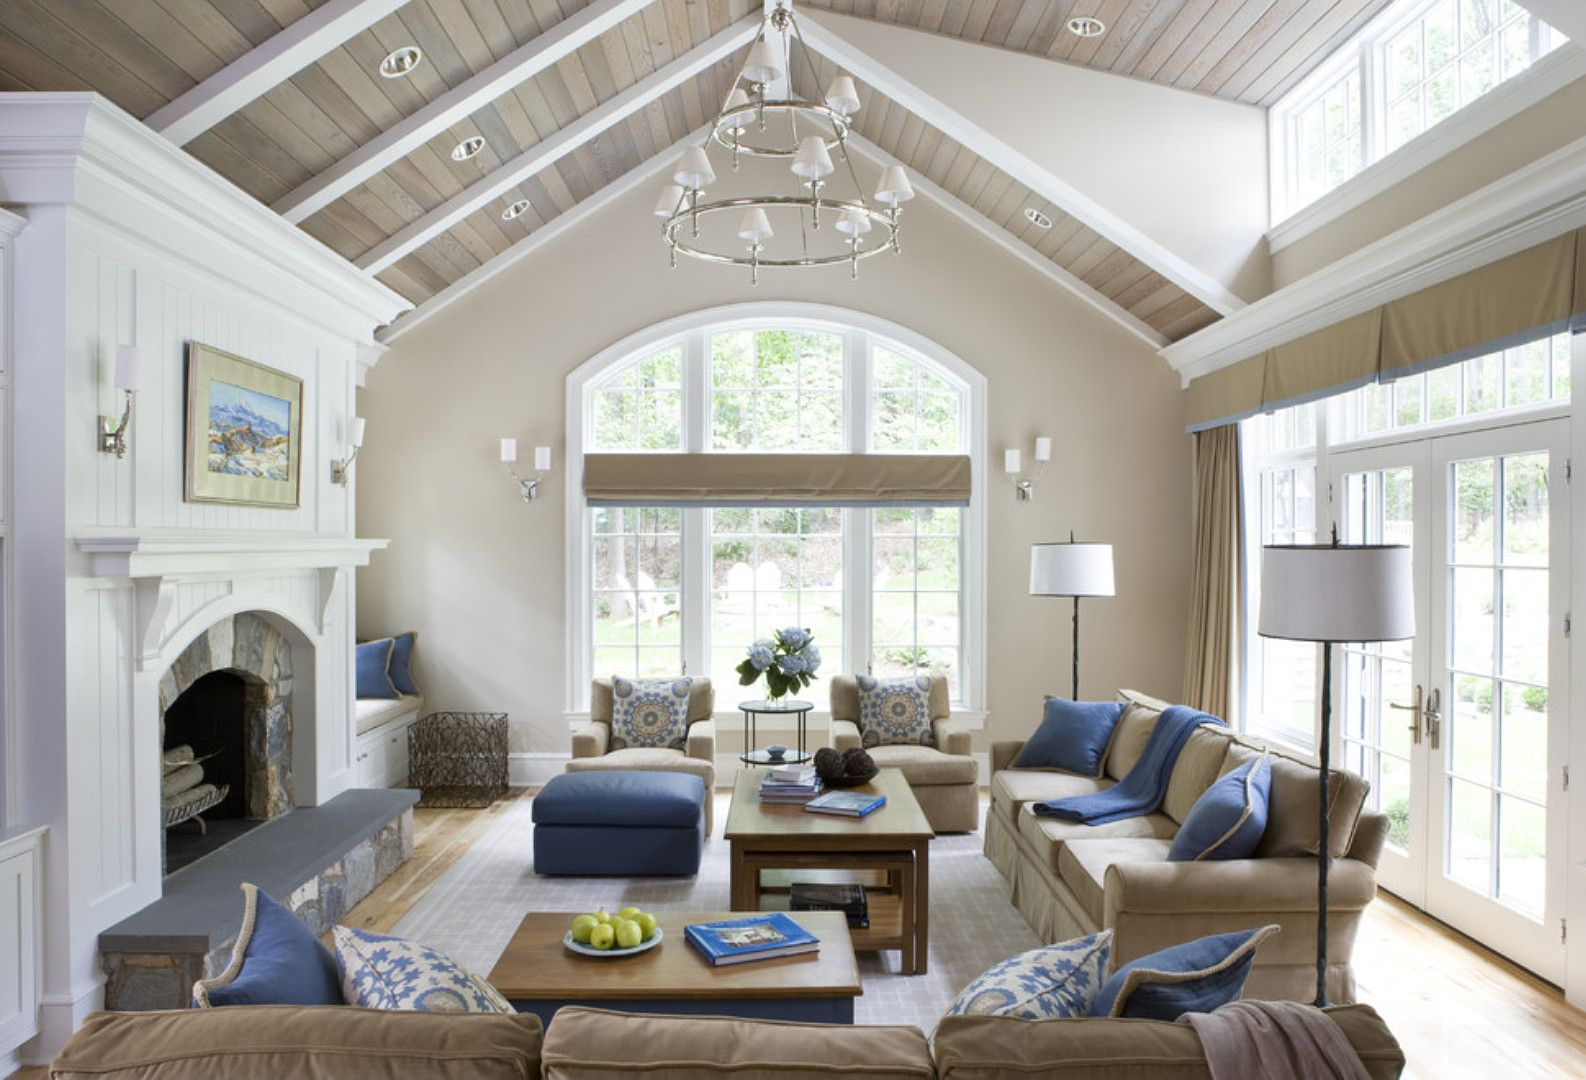 Interior Design Ideas Home Bunch An Interior Design Luxury Homes Blog Vaulted Ceiling Living Room Living Room Ceiling Vaulted Ceiling Lighting